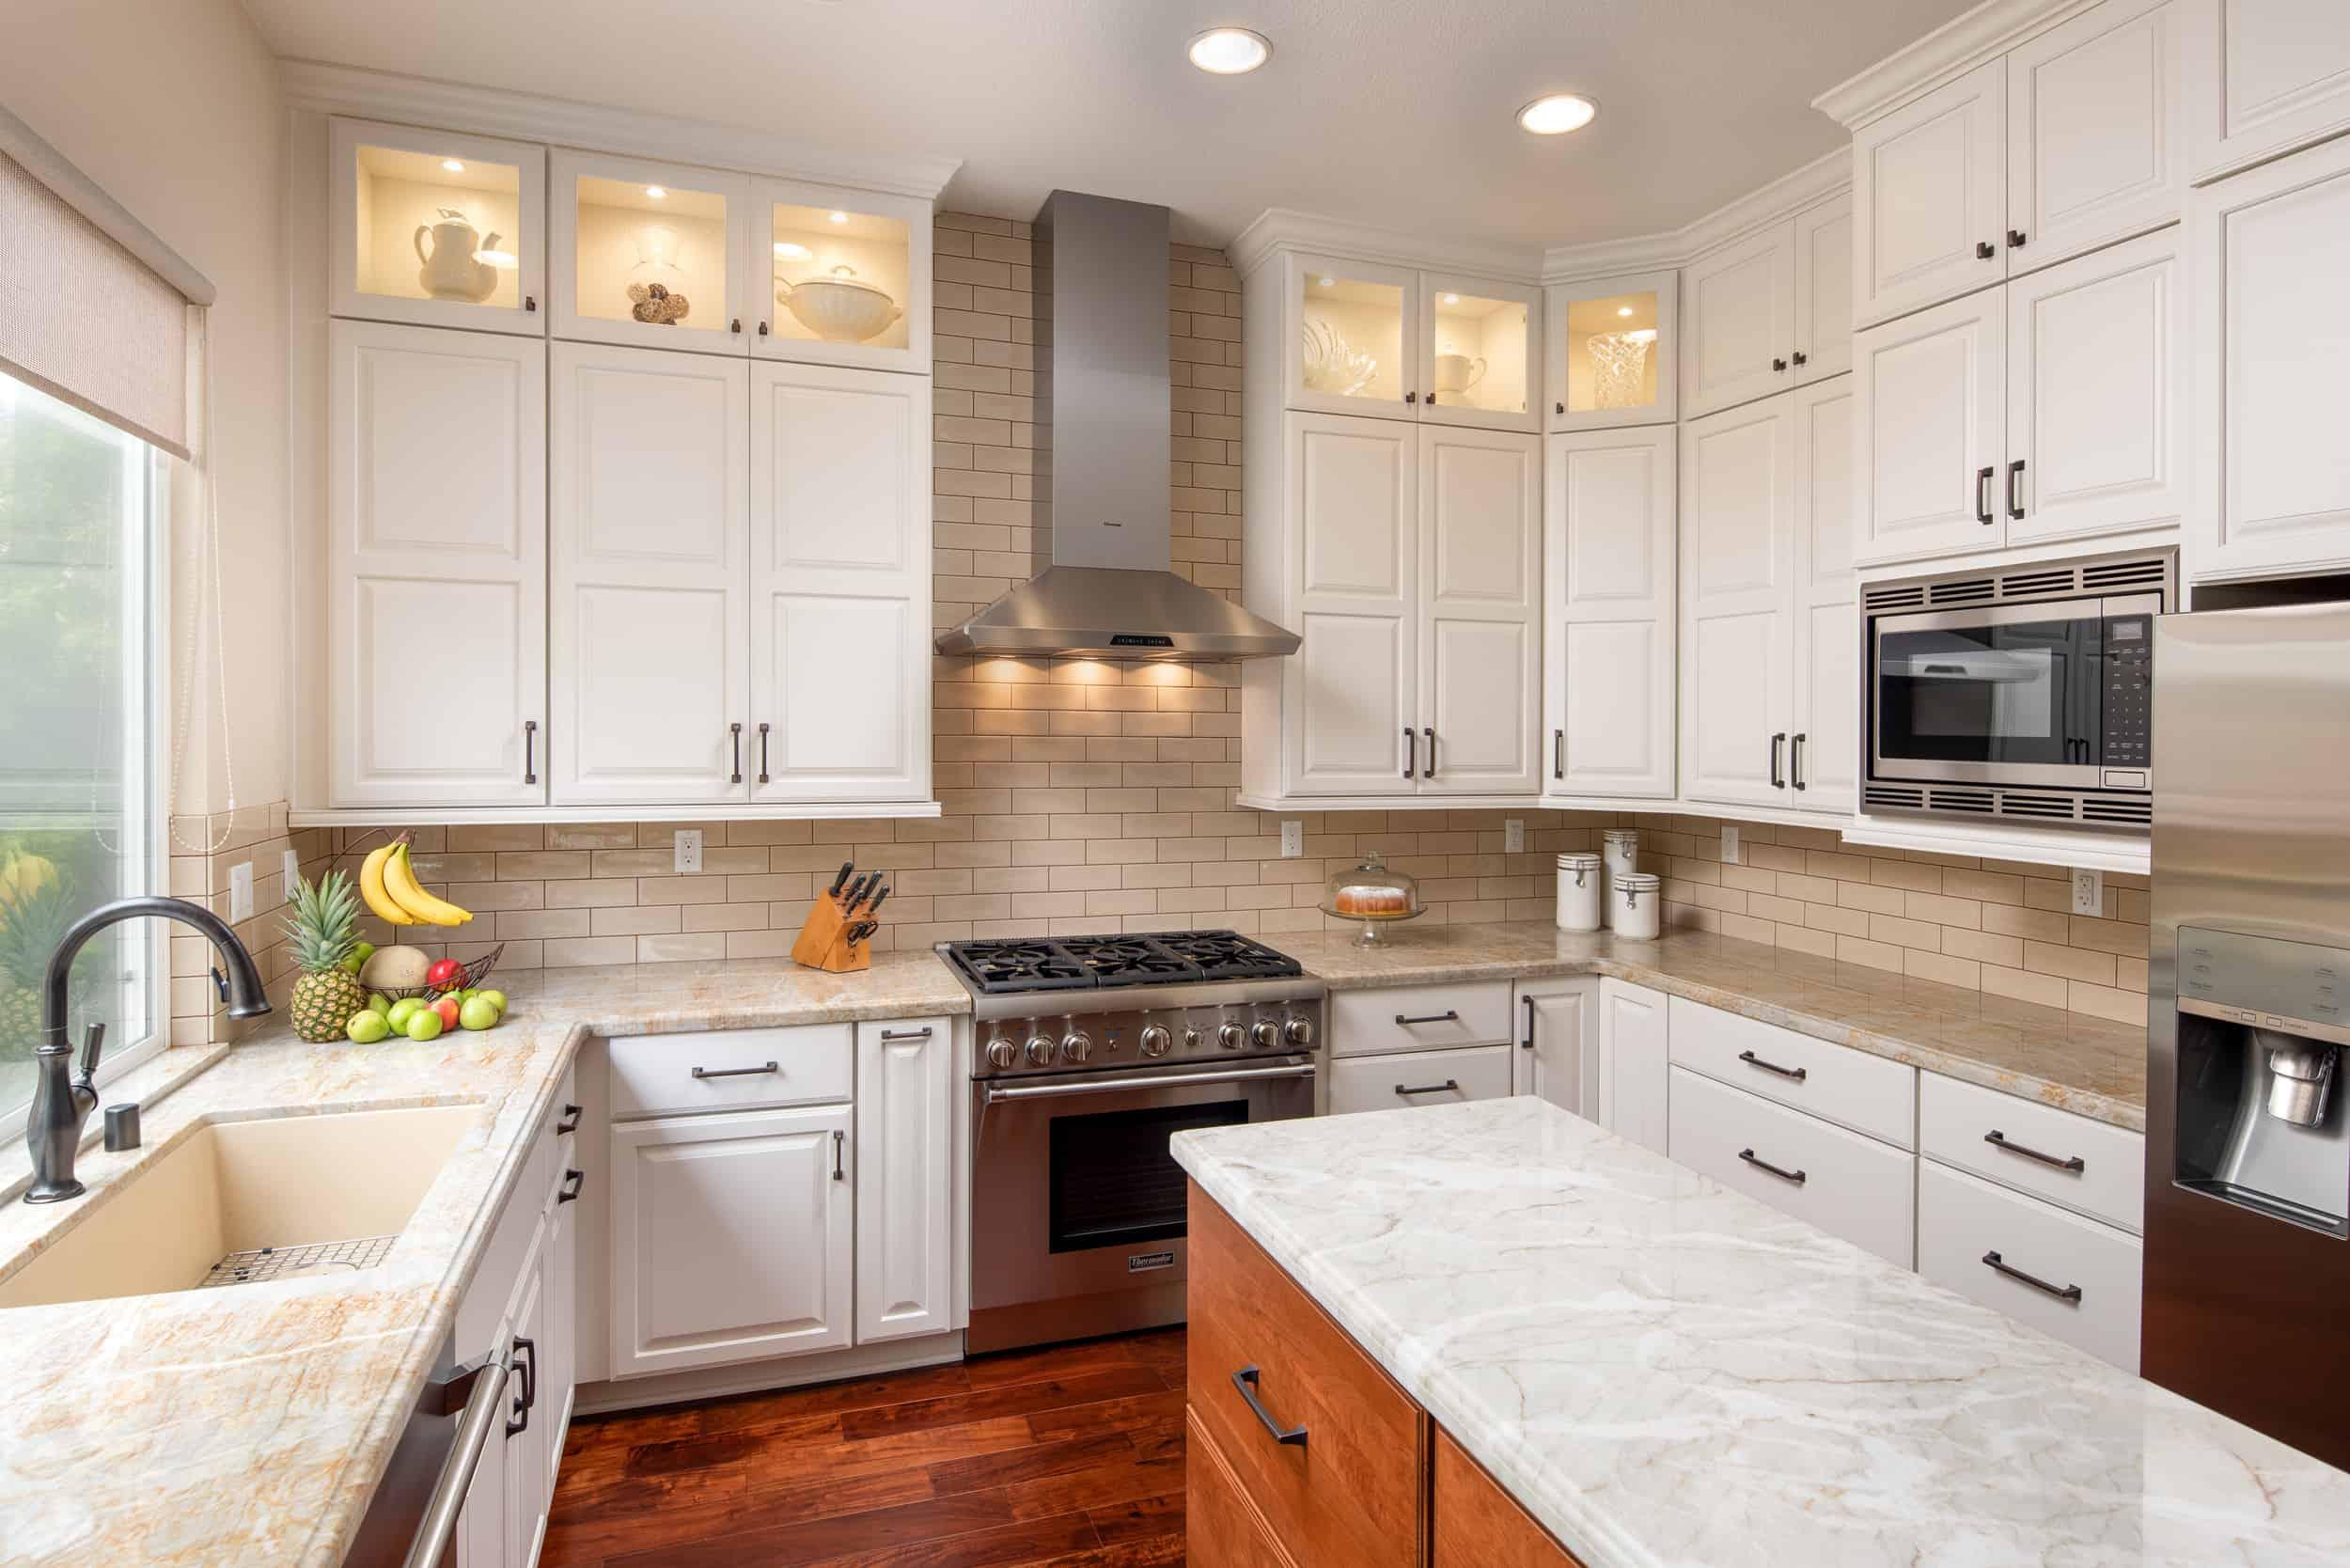 Home Remodeling Ideas & Gallery